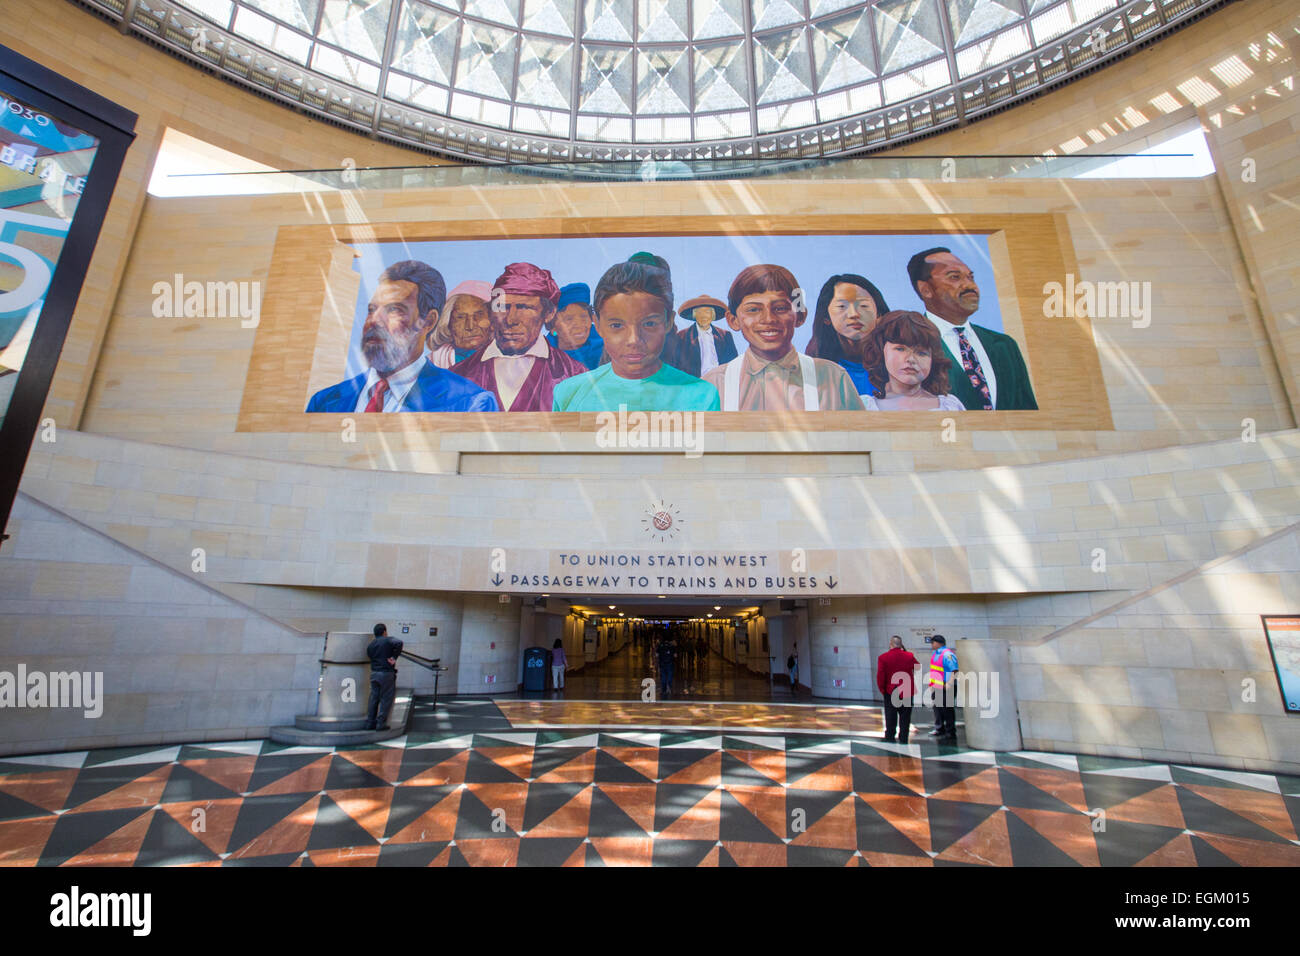 Union Station, Los Angeles, California - Stock Image